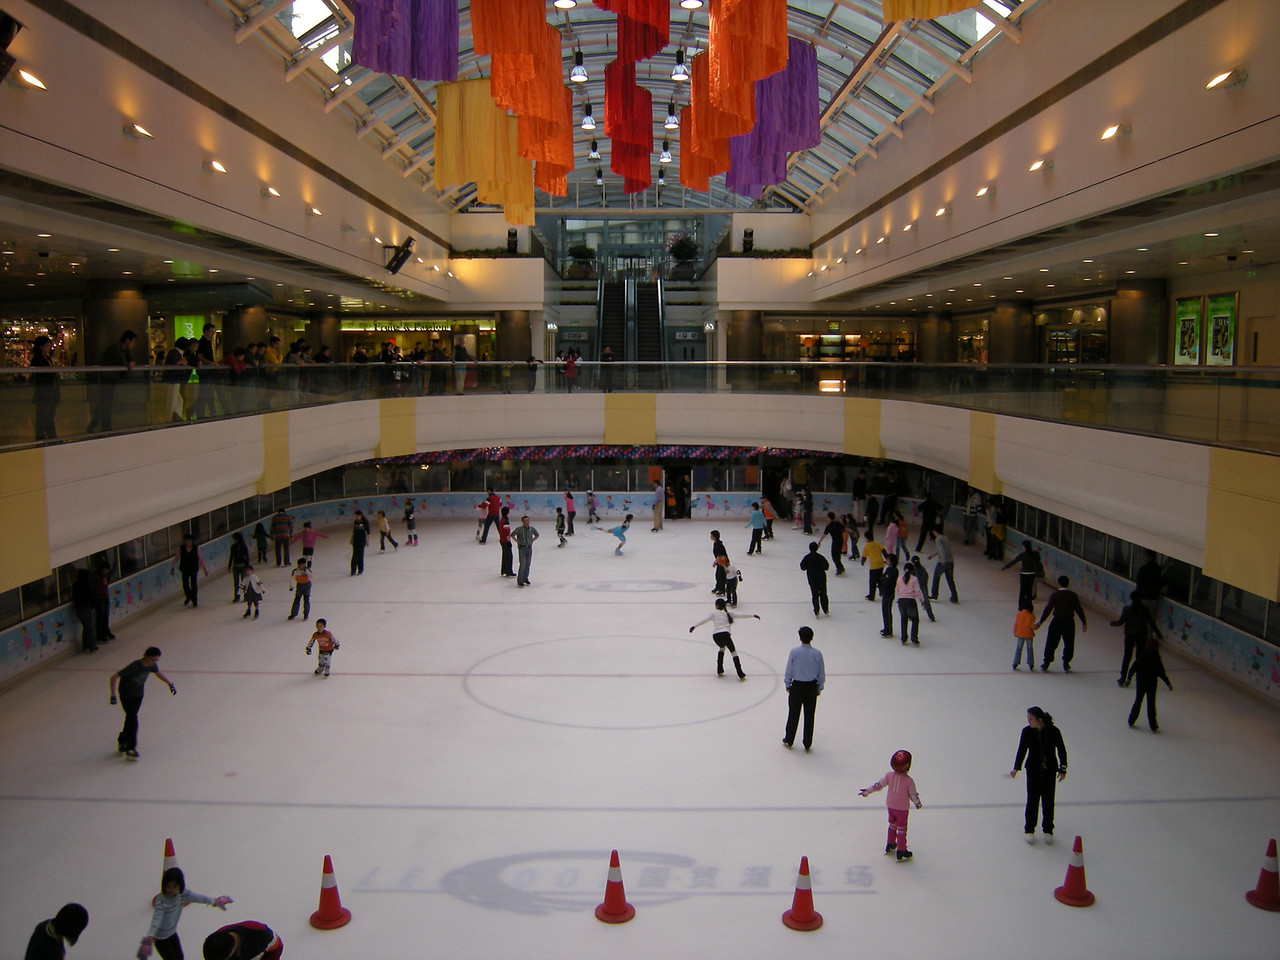 piste de patinage dans le centre commercial de Guomao